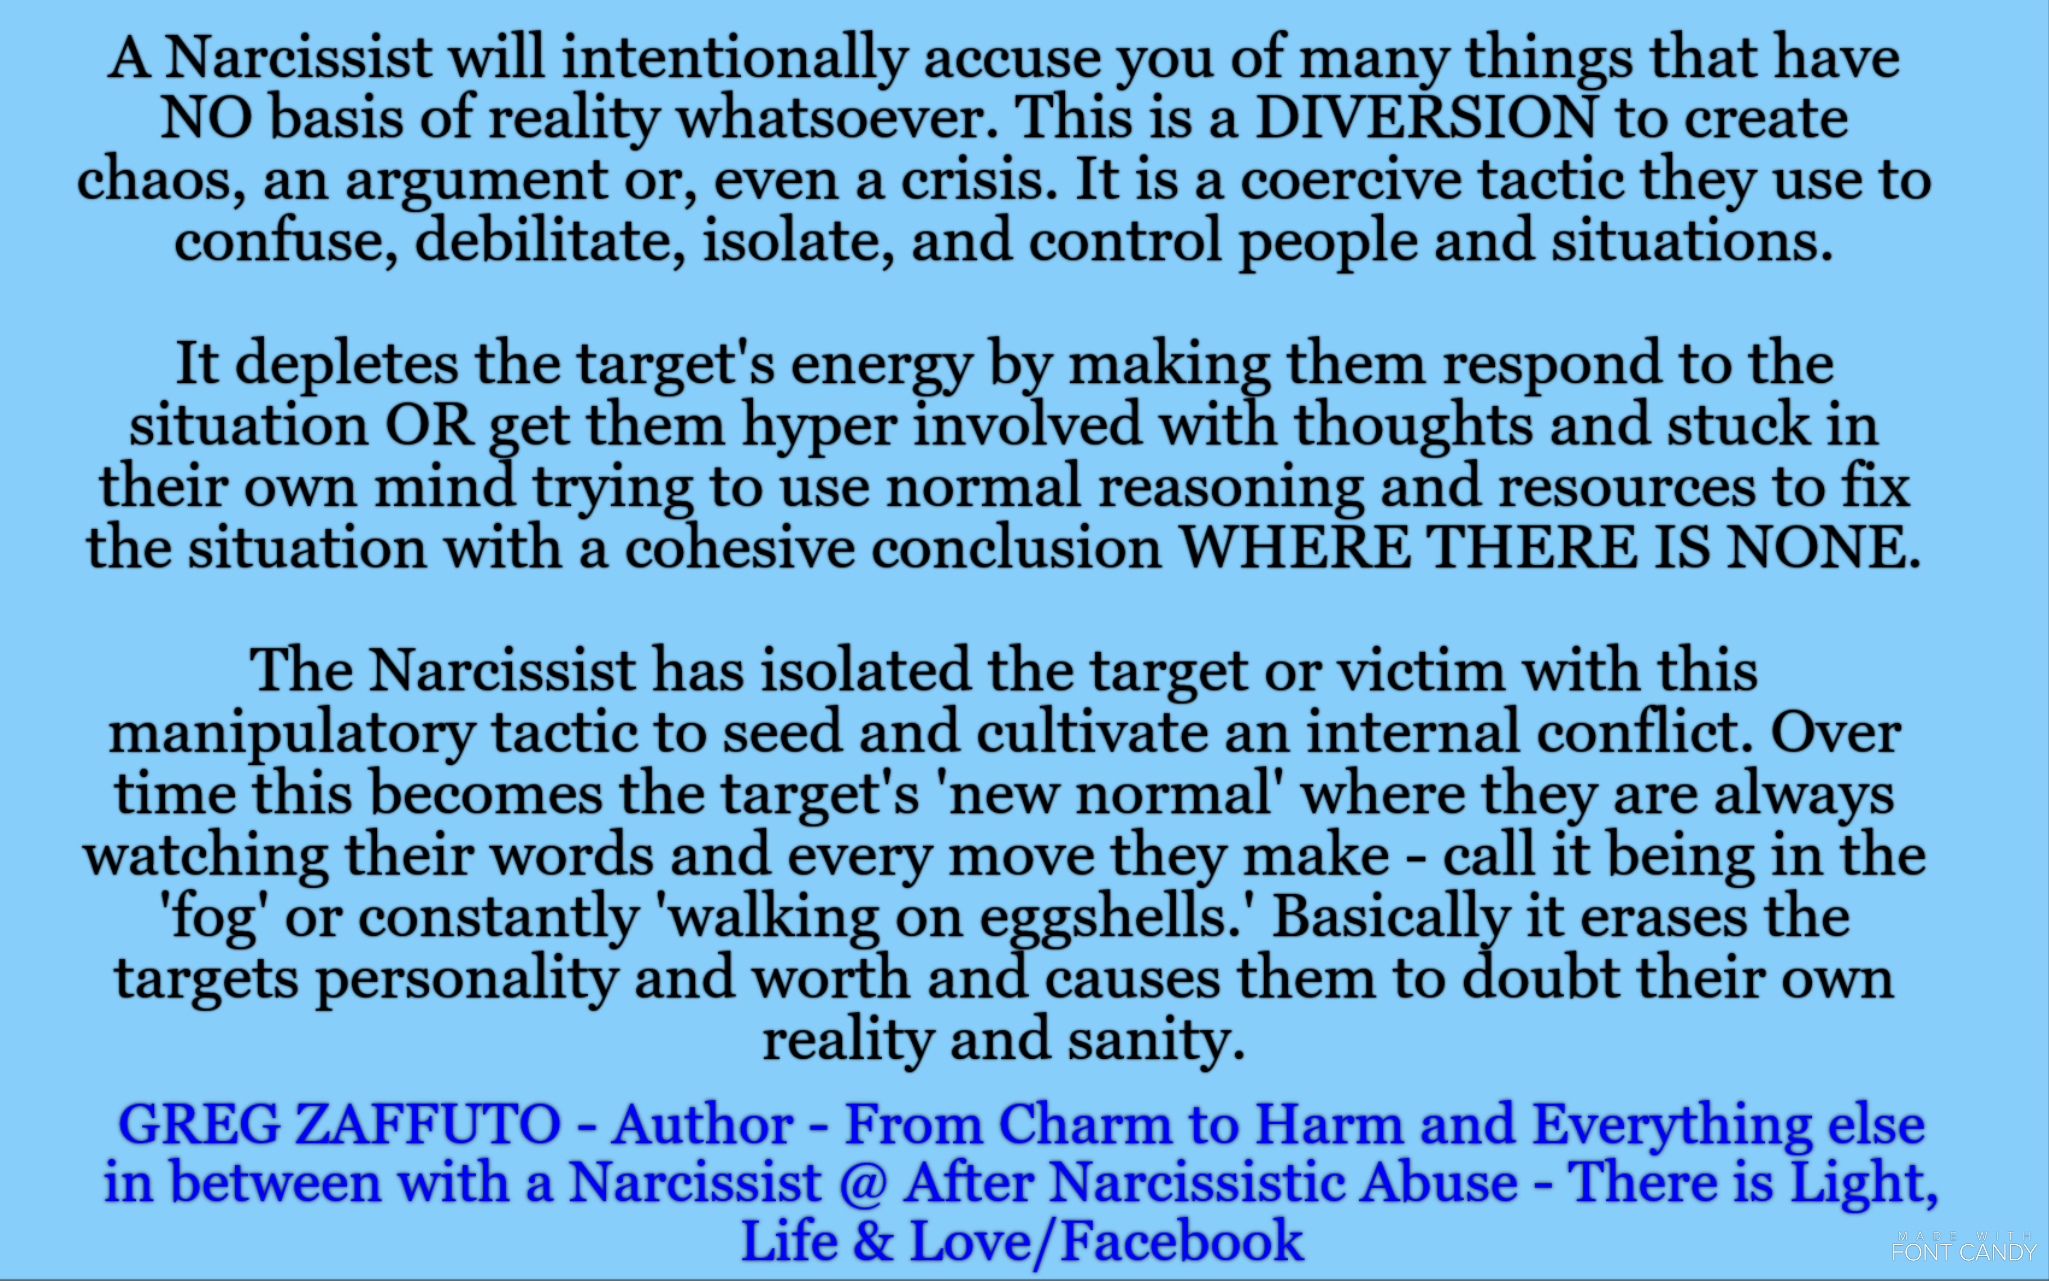 Narcissists will accuse you of things that have no basis of